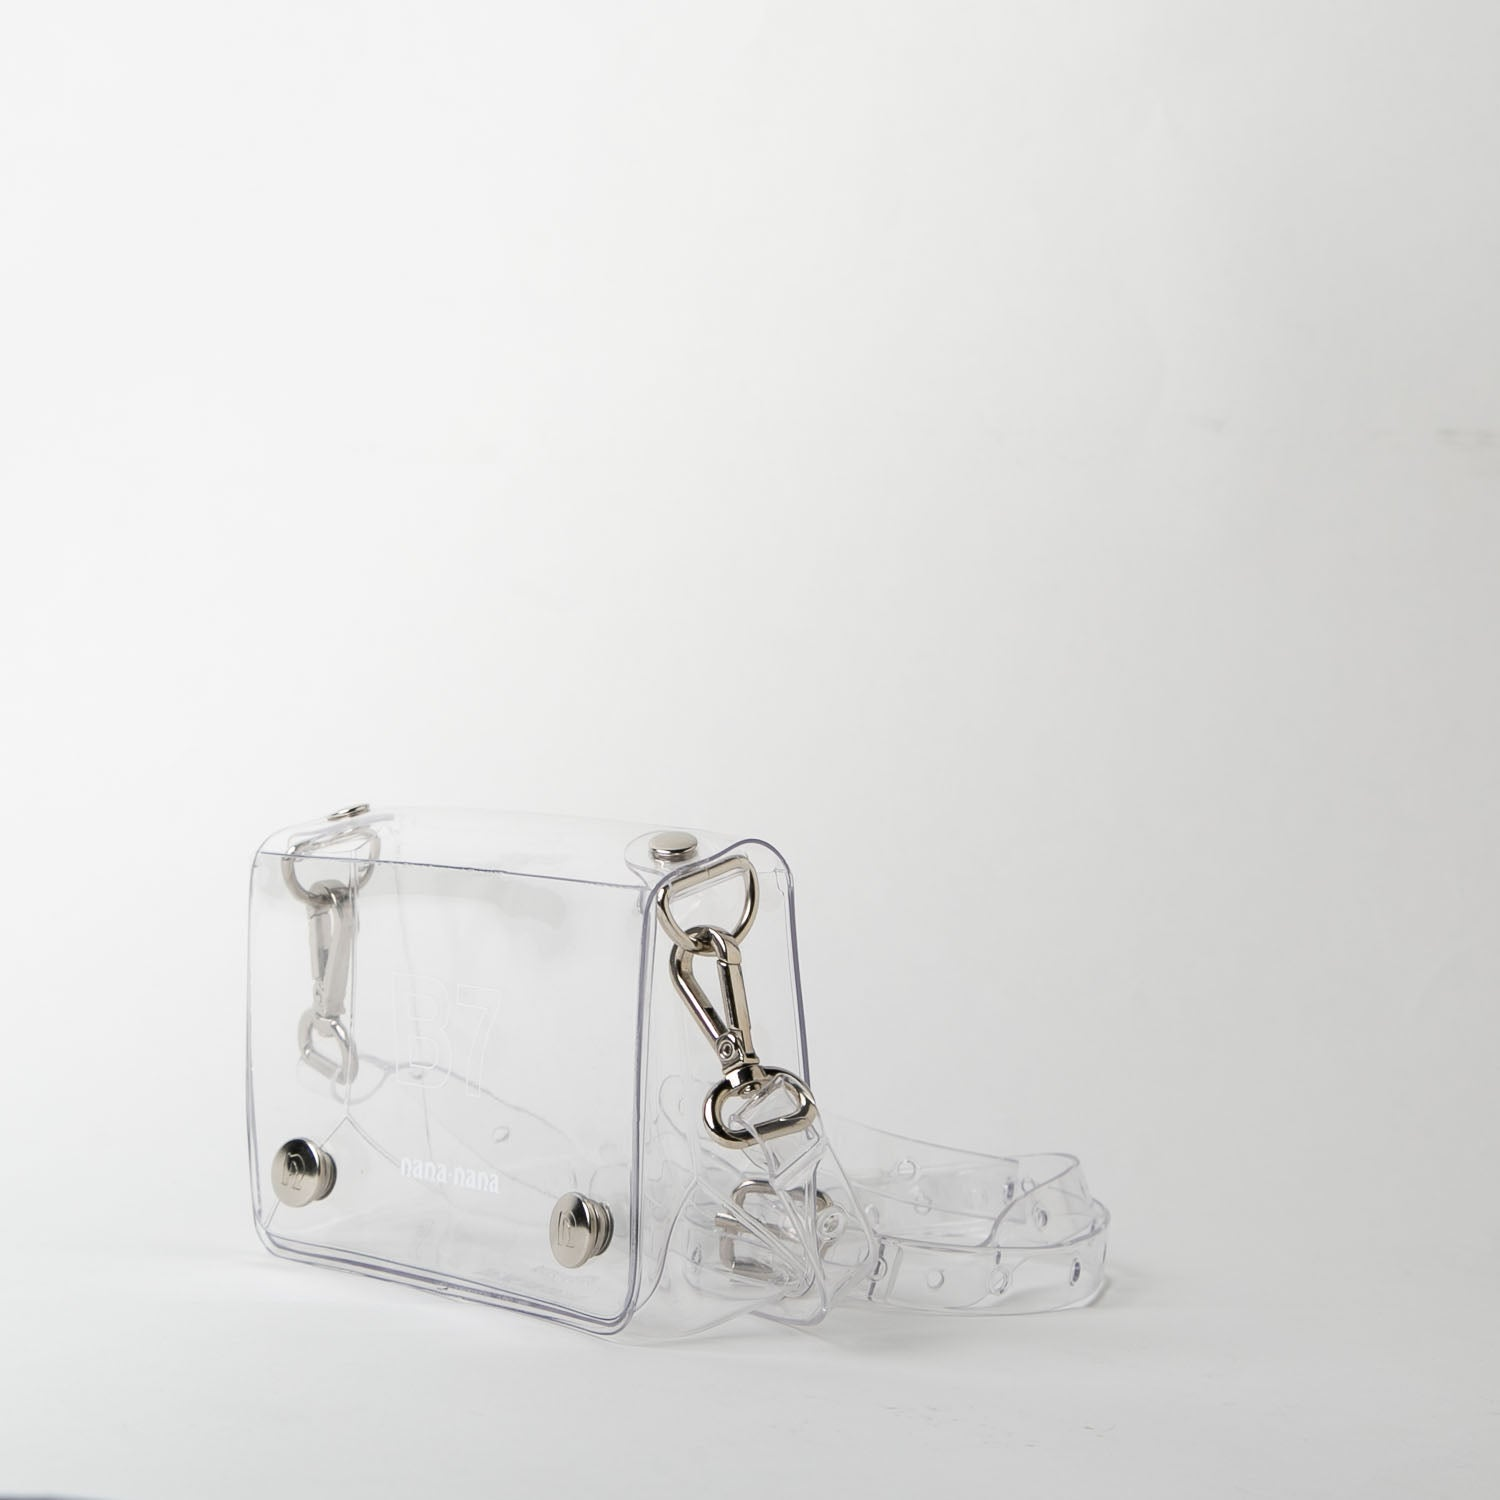 B7 clear pvc bag at Secret Location by nana-nana